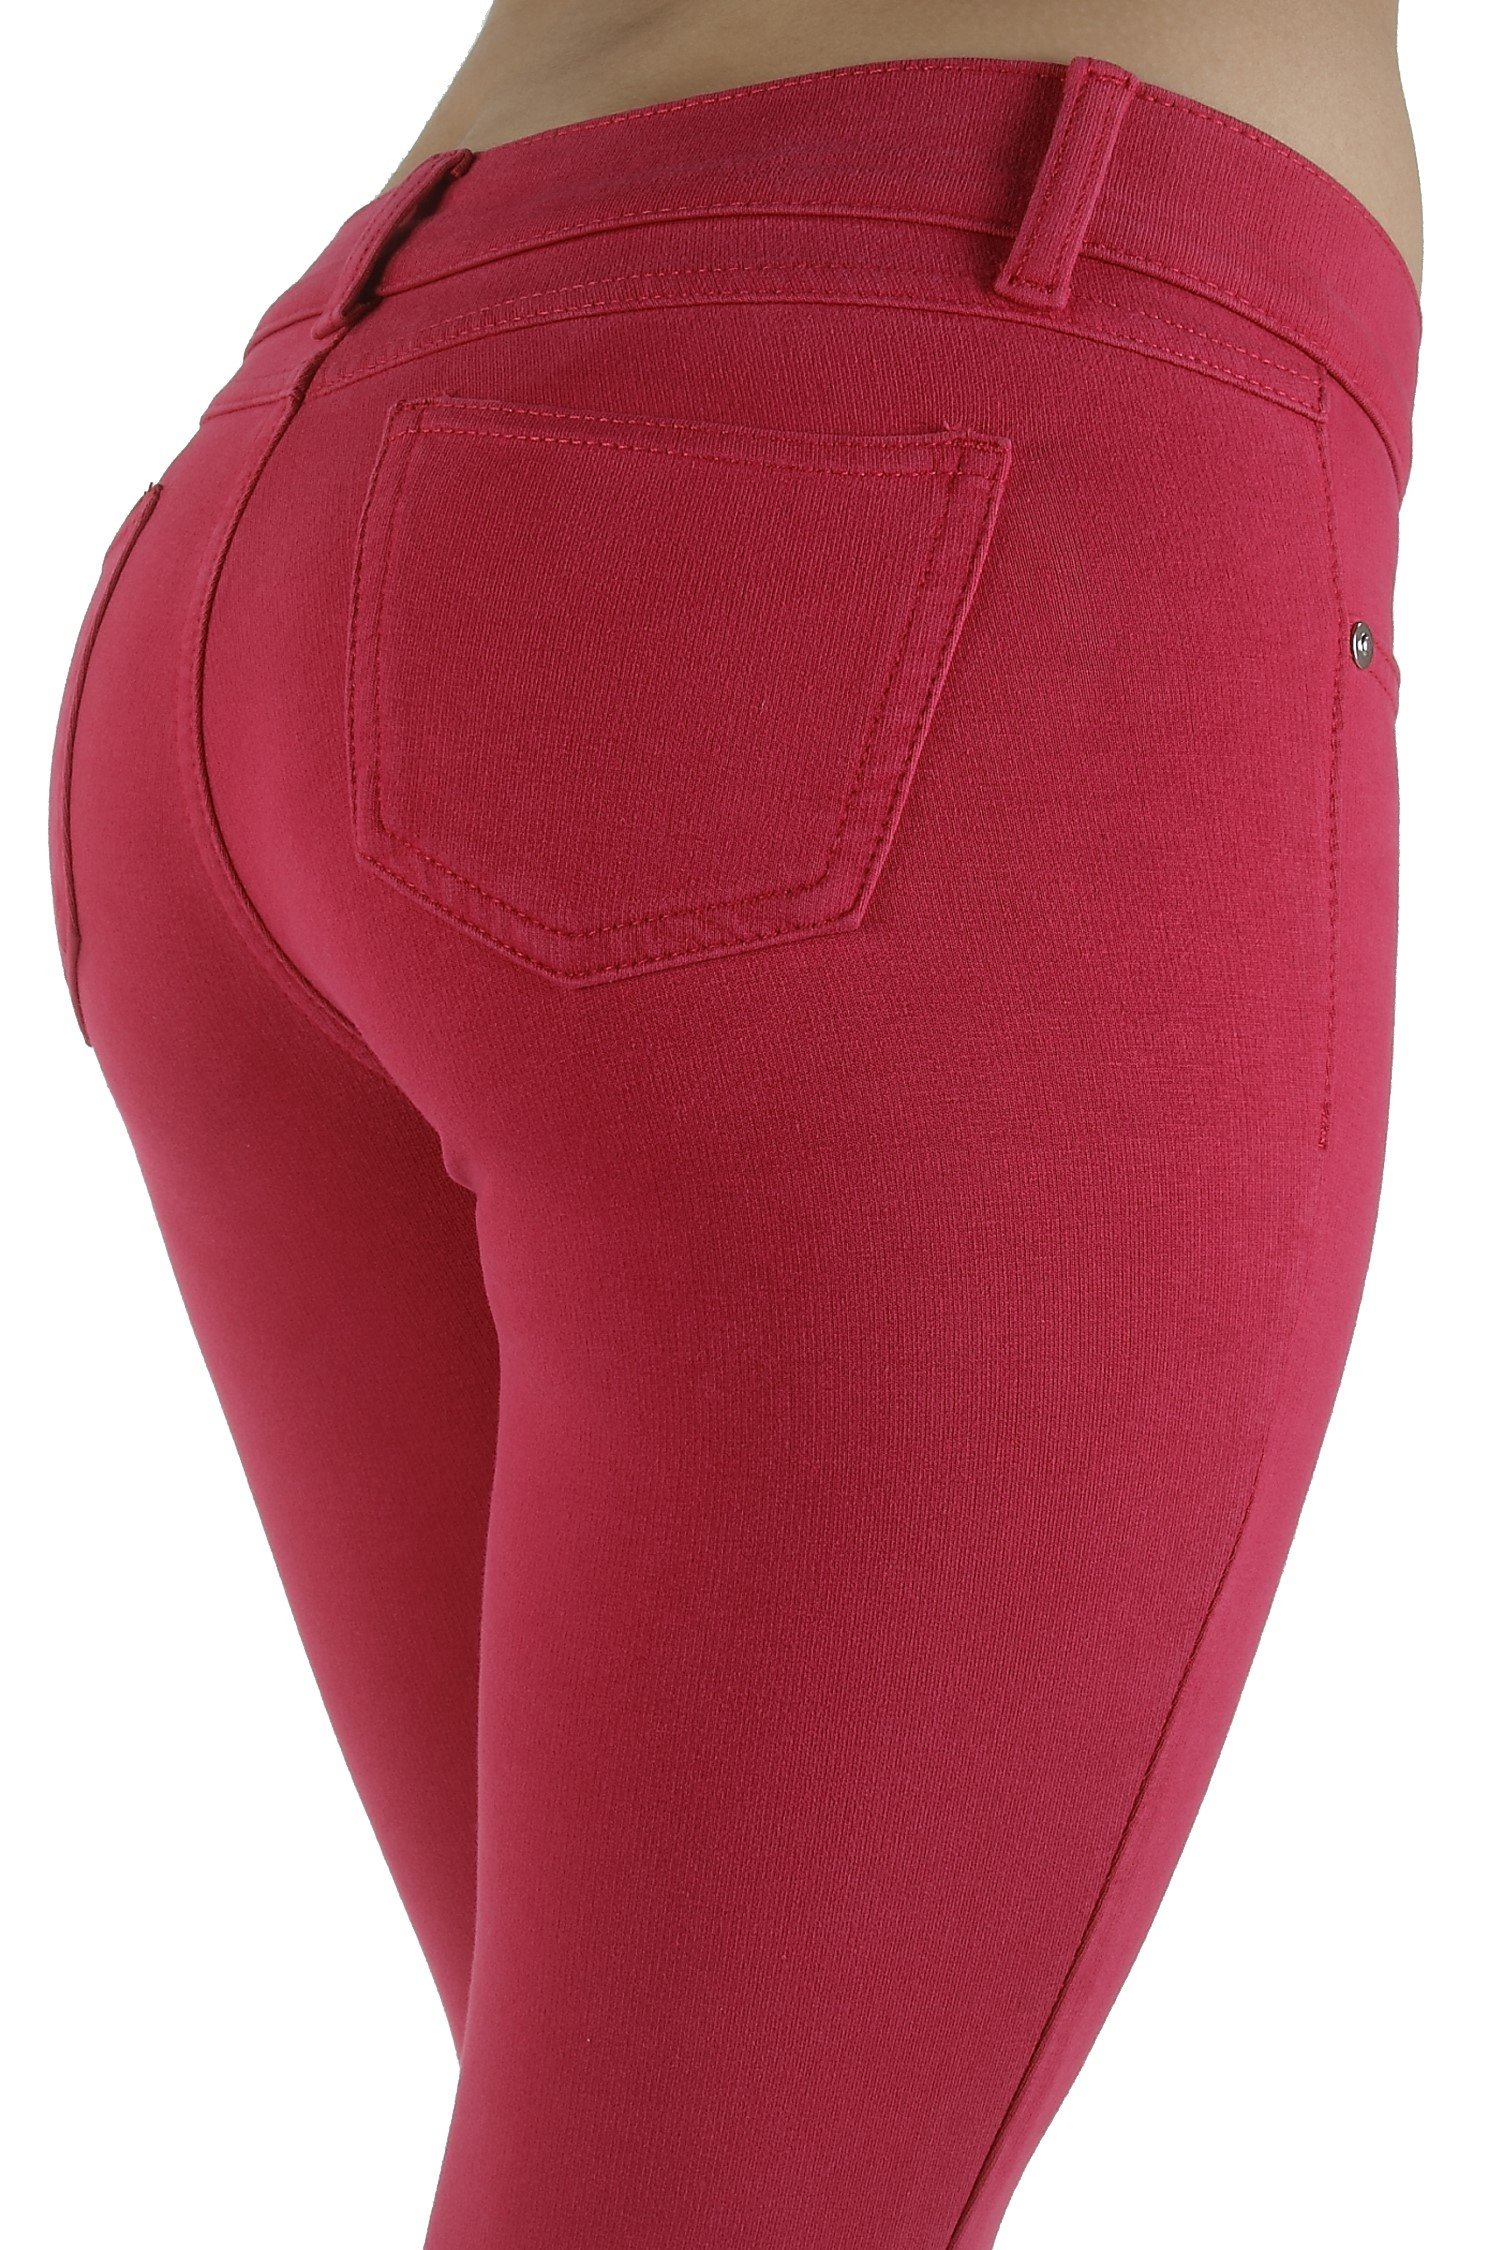 Basic pants skinny leg French Terry Jeggings style Moleton, With a gentle butt lifting stitching in Magenta Size S